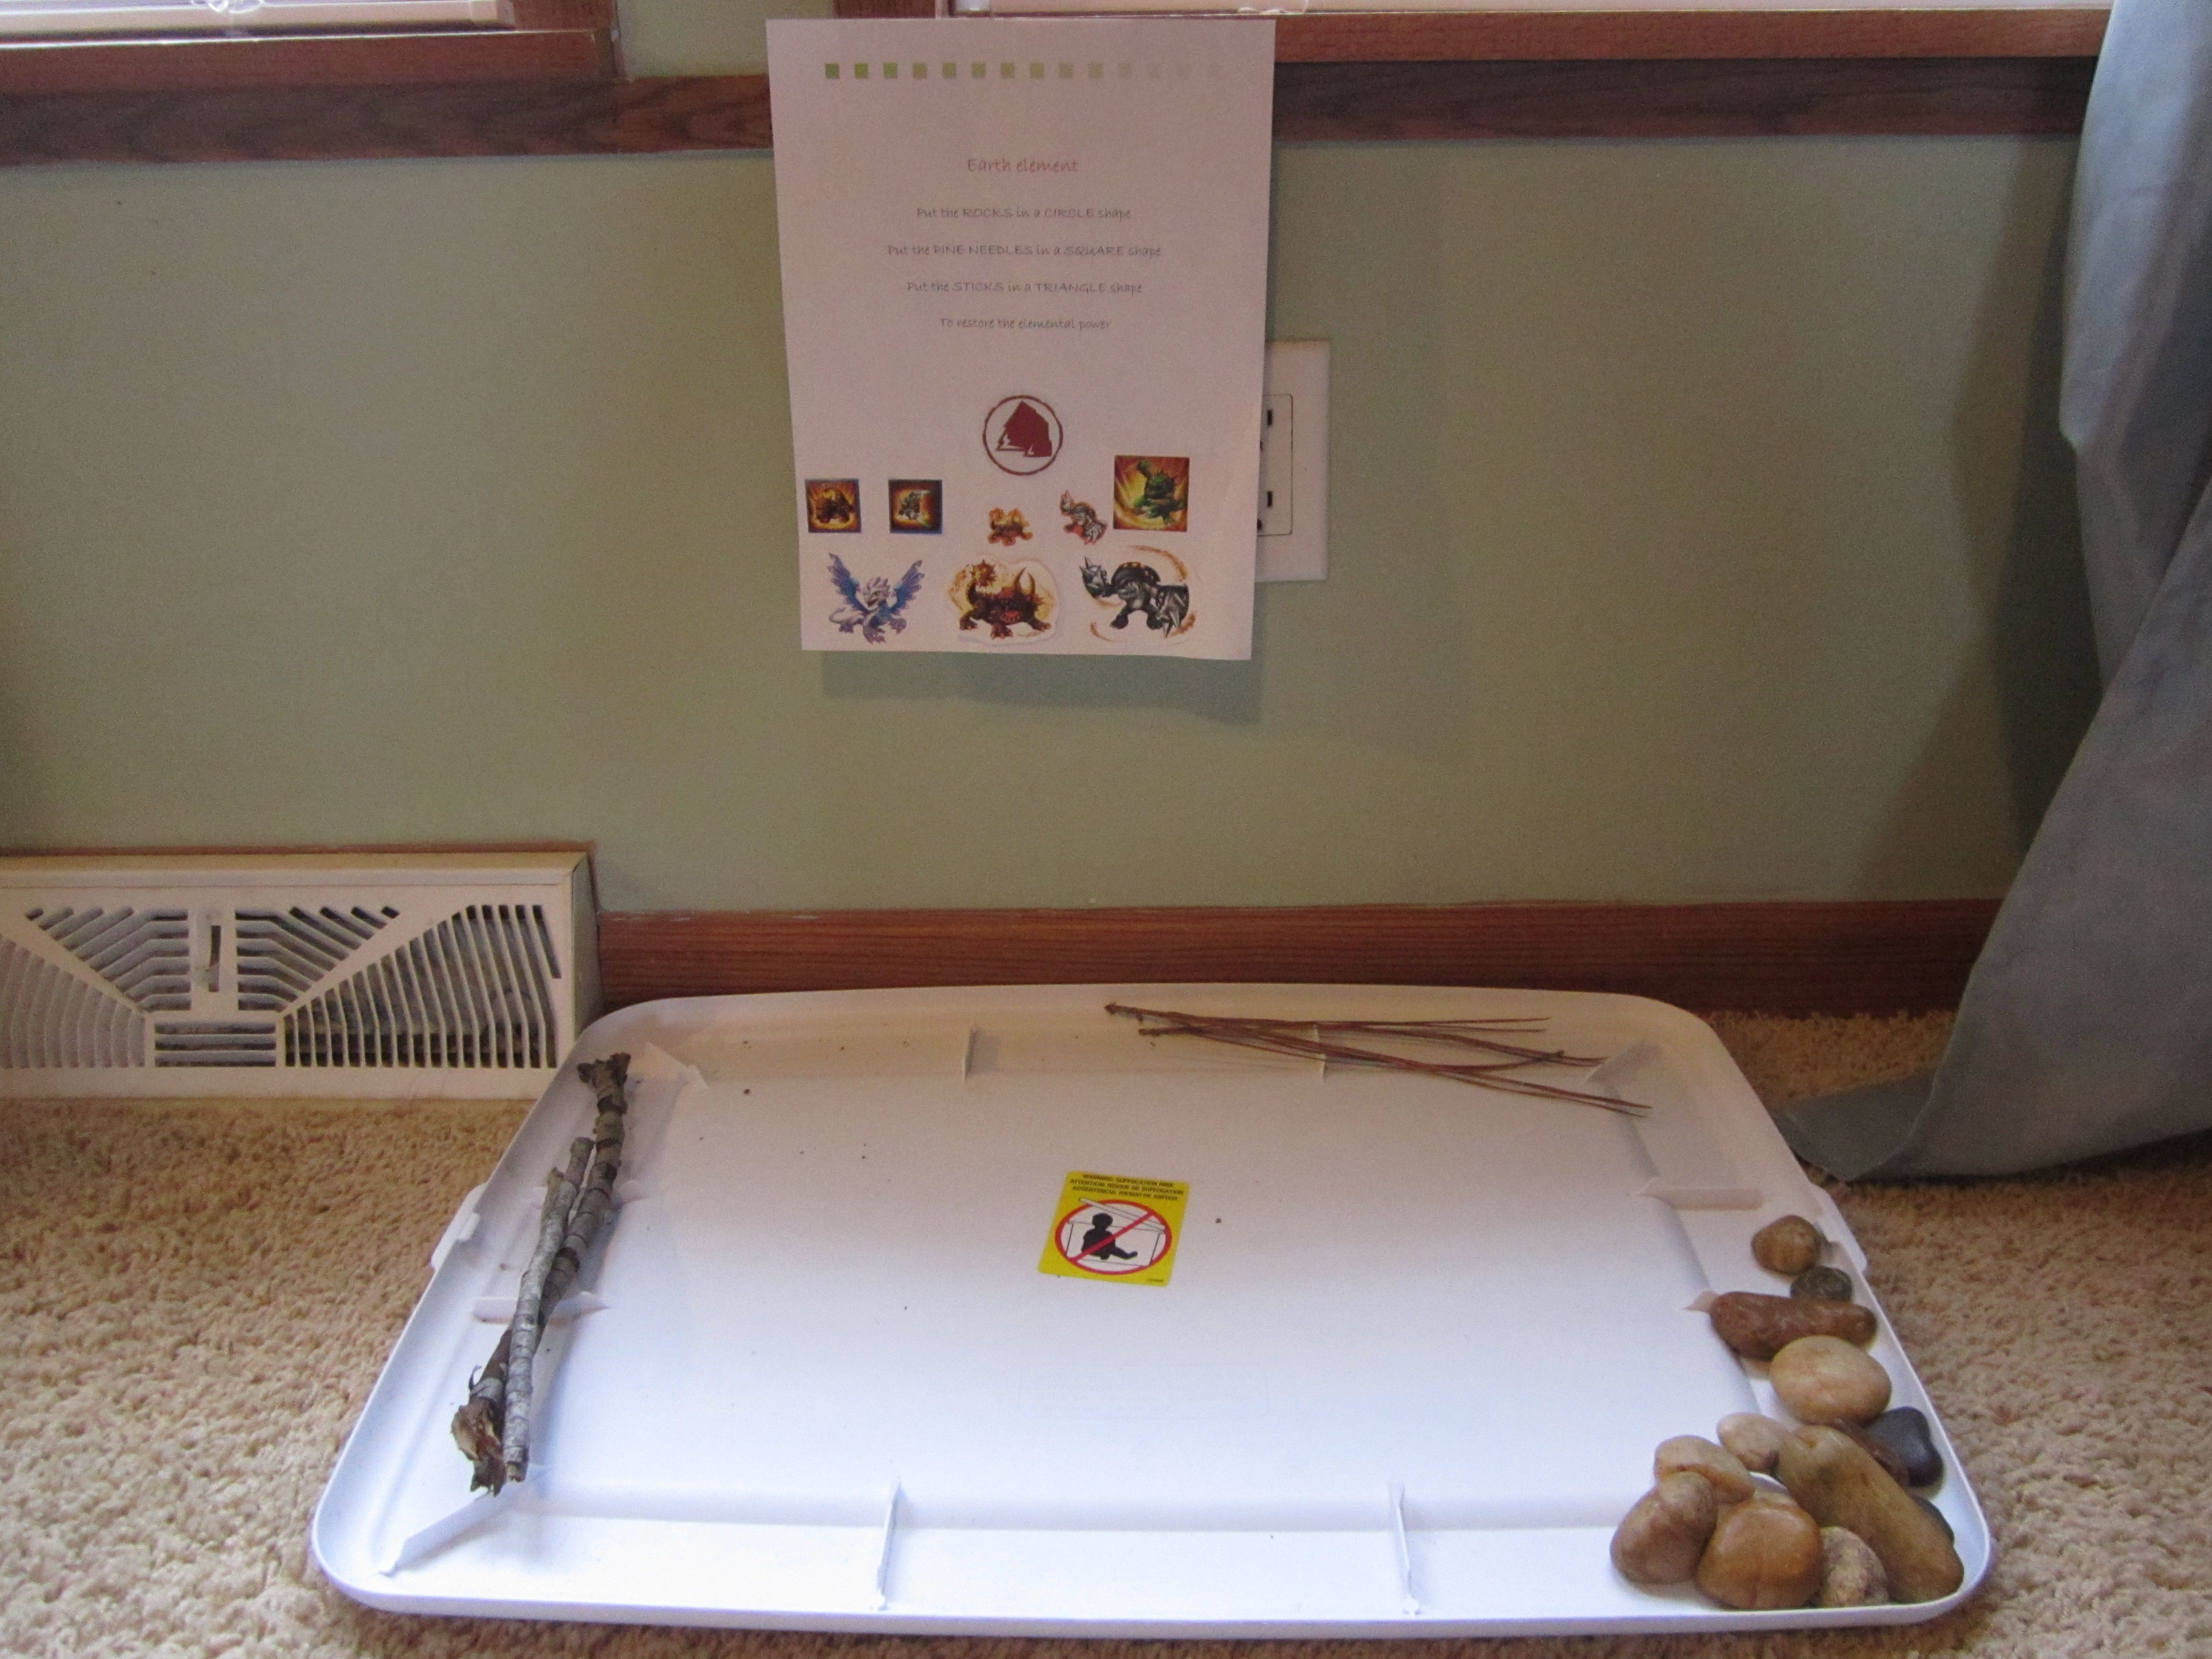 skylanders party , earth element, put rocks in a certain shape , then follow with pine needles and sticks in certain shapes